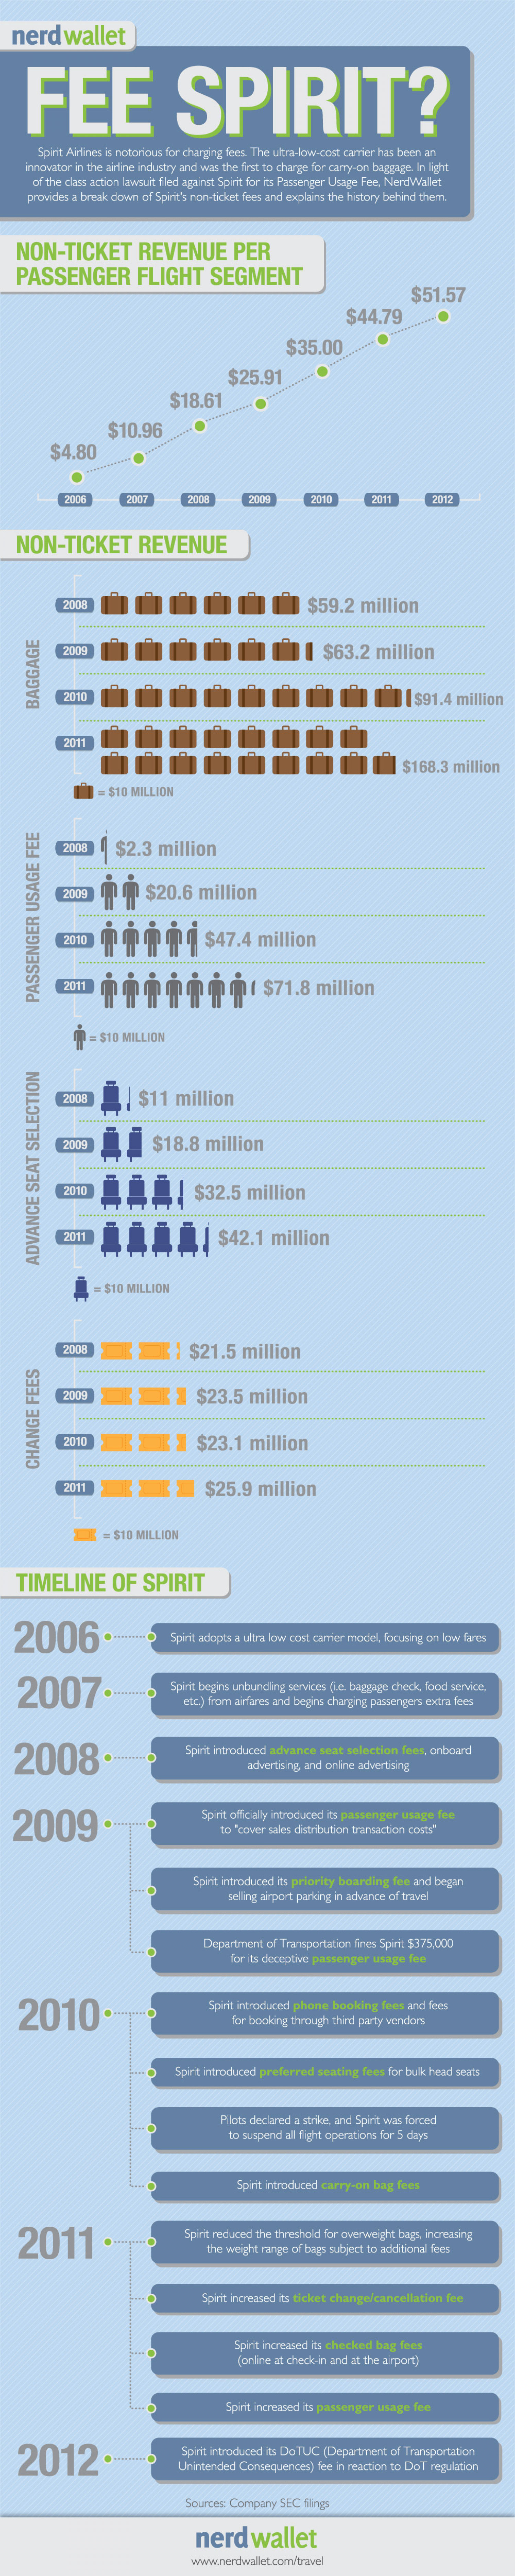 NerdWallet Study: Spirit Airlines Collected $142 million in Passenger Usage Fees Infographic